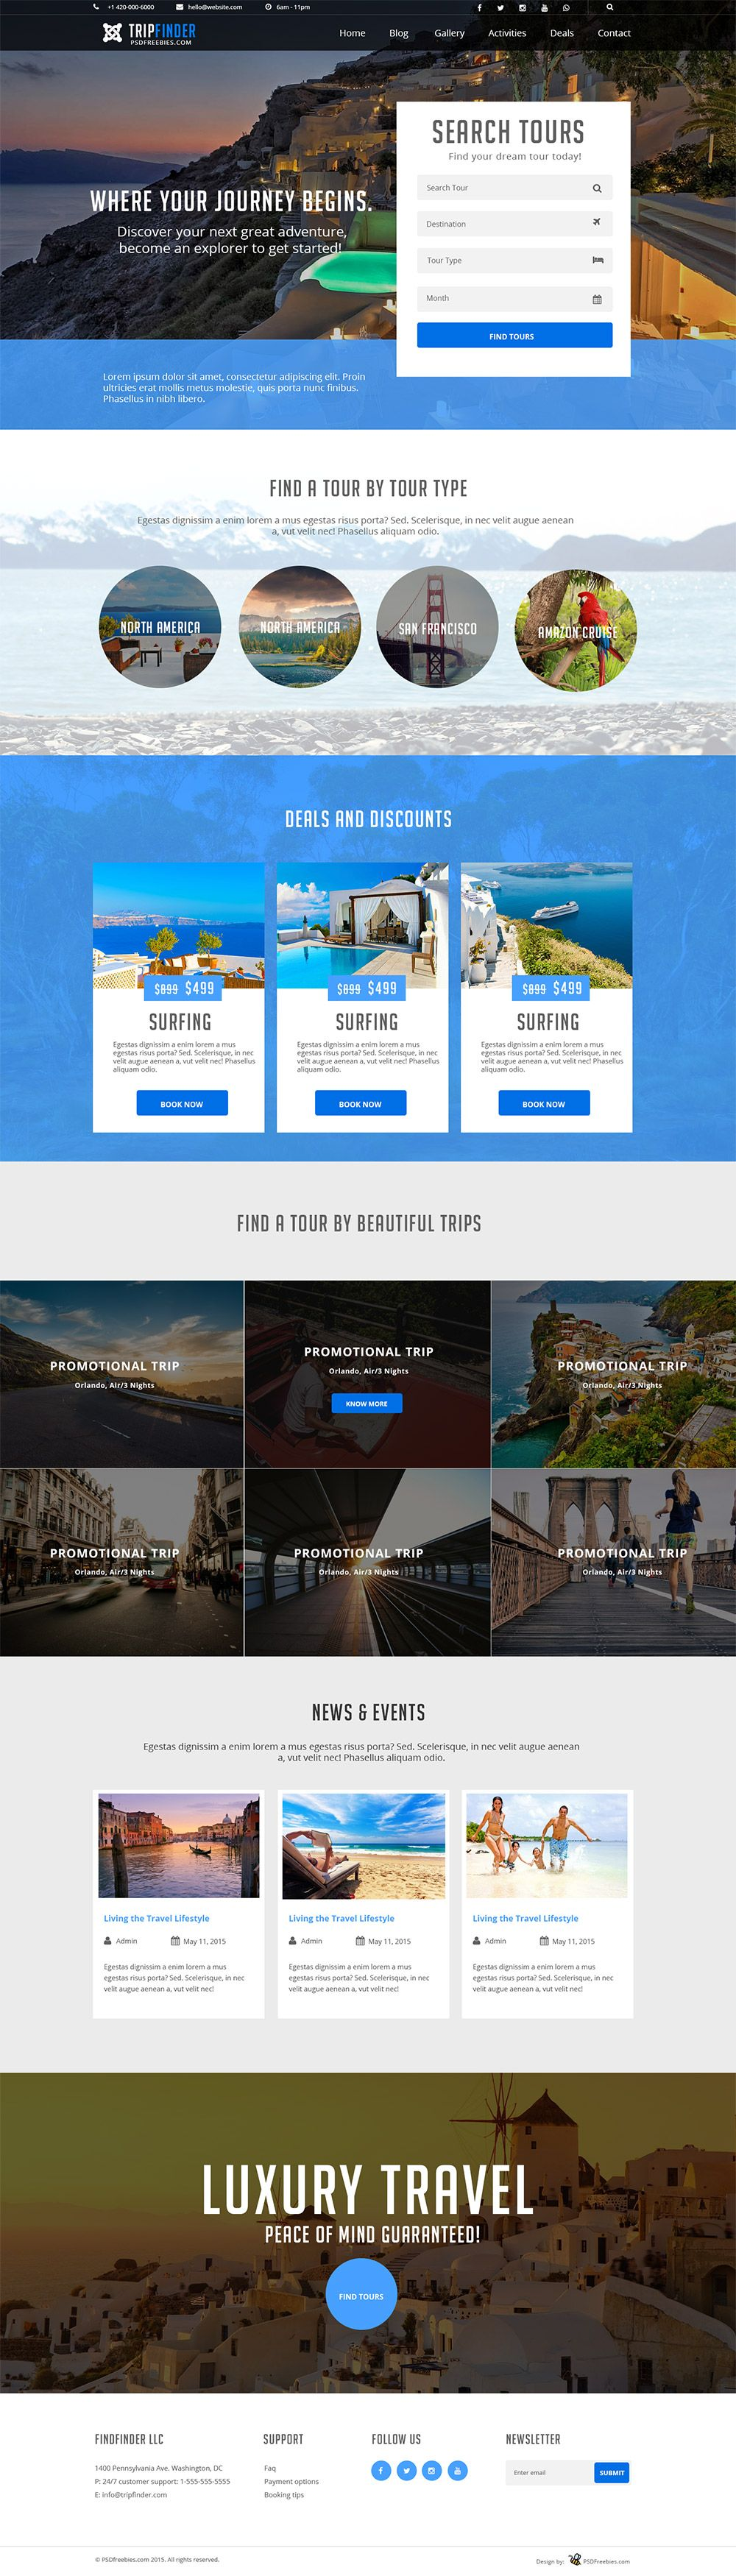 Free tour and travel guide psd template business with no walls download free tour and travel guide psd template this freebie suitable for companiestravel agencies that provide services for tourists can be used to maxwellsz